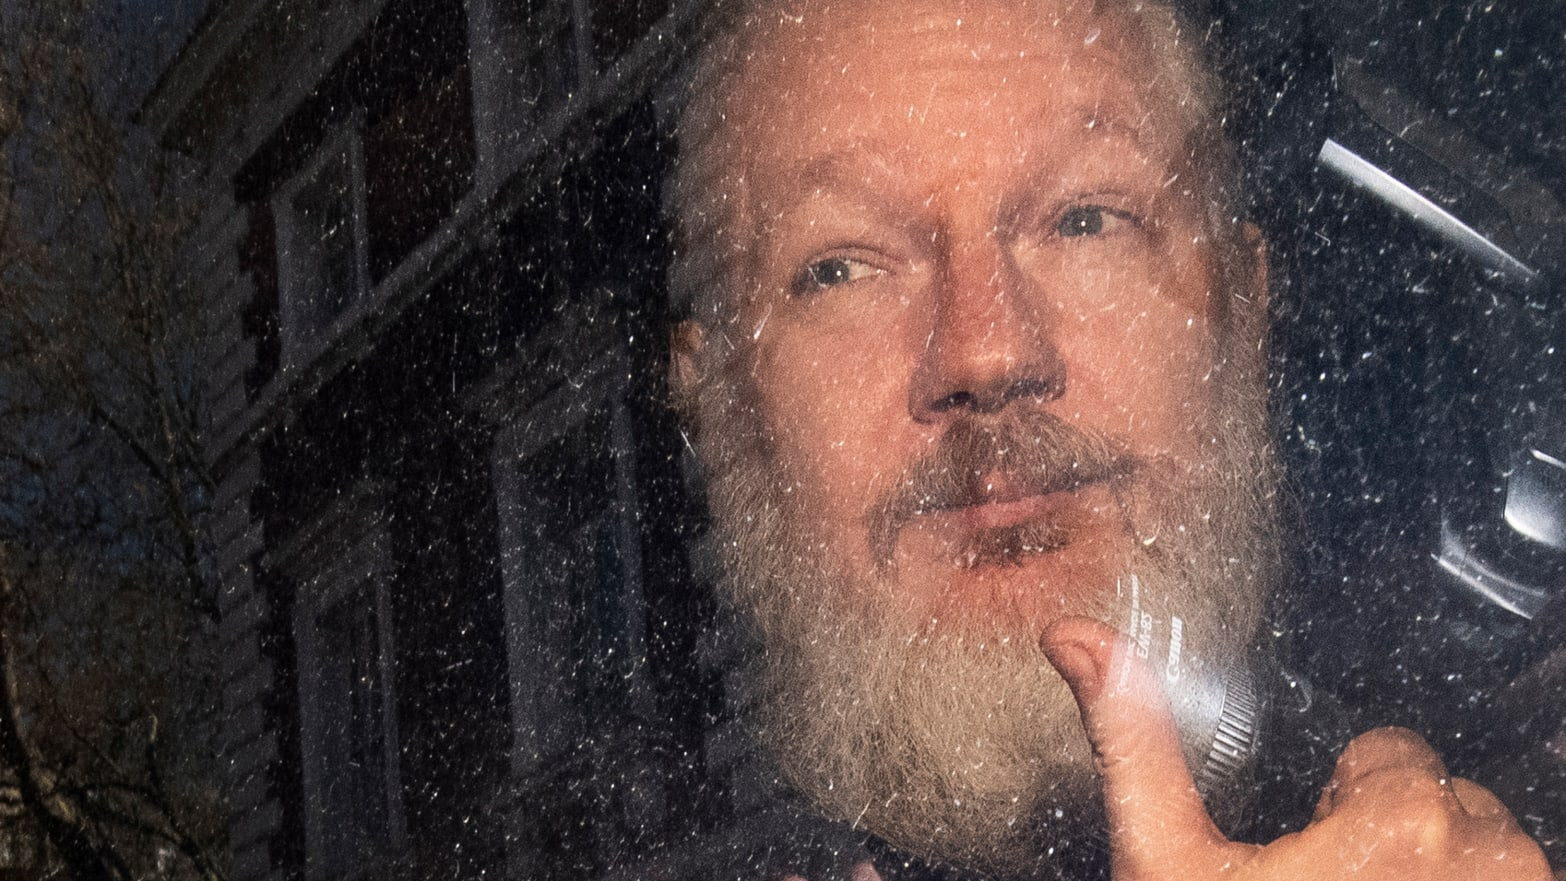 Julian Assange Espionage Act Charges Escalate Trump's War on Journalists He Calls the 'Enemy of the People'